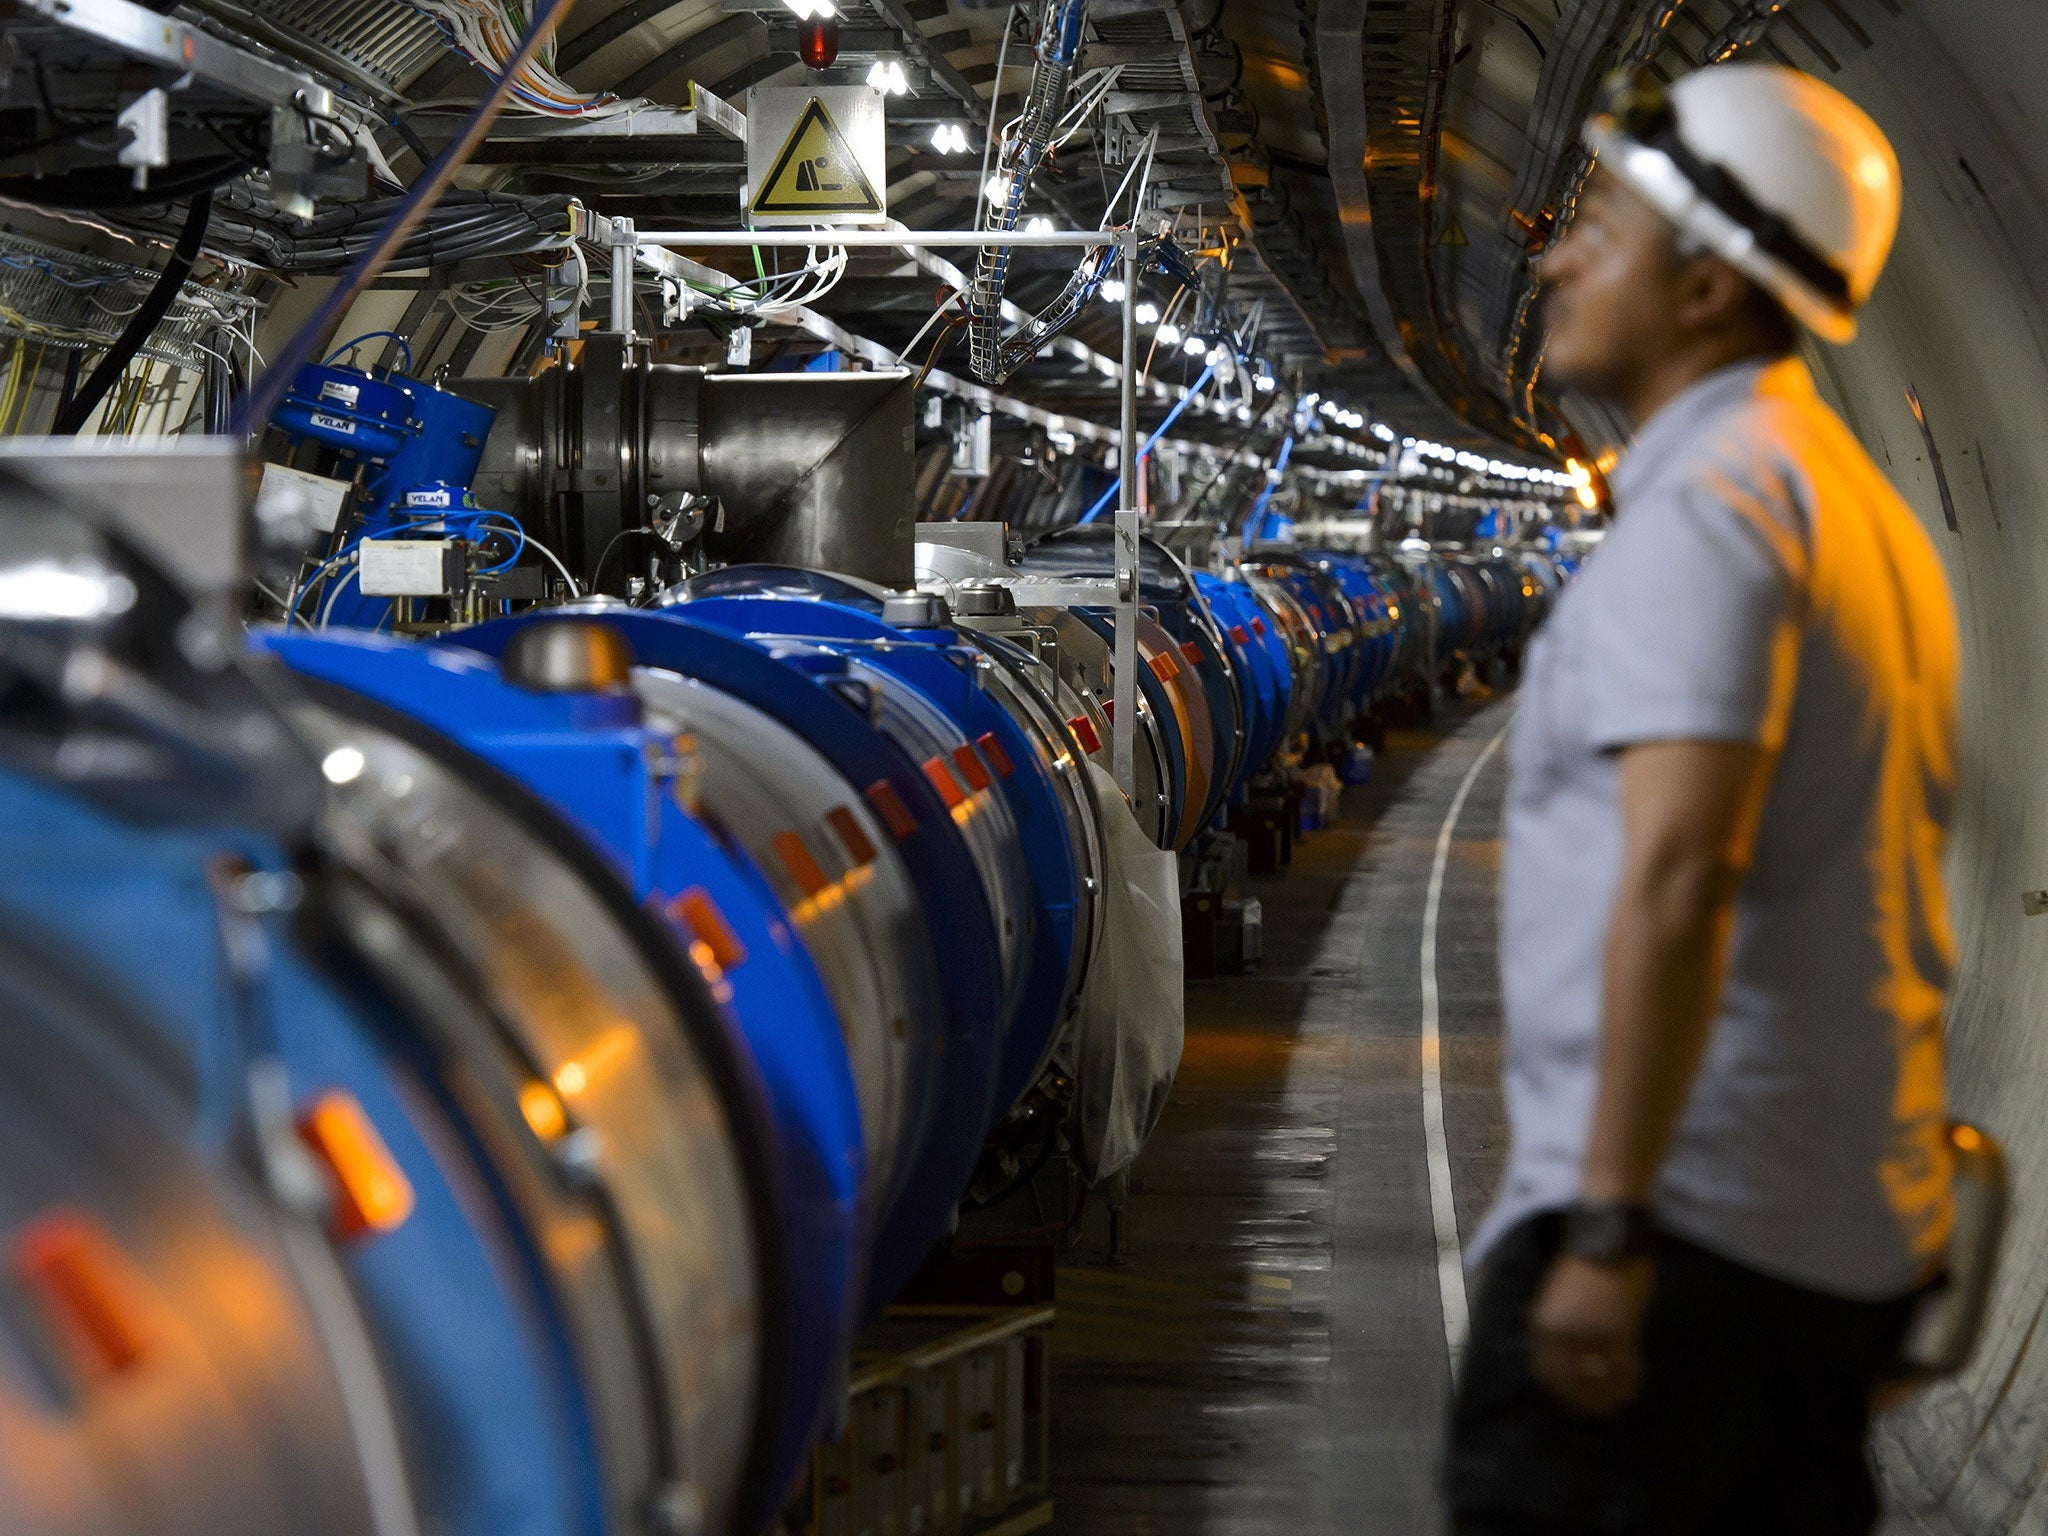 Large Hadron Collider could be about to find a new particle, upending our understanding of physics